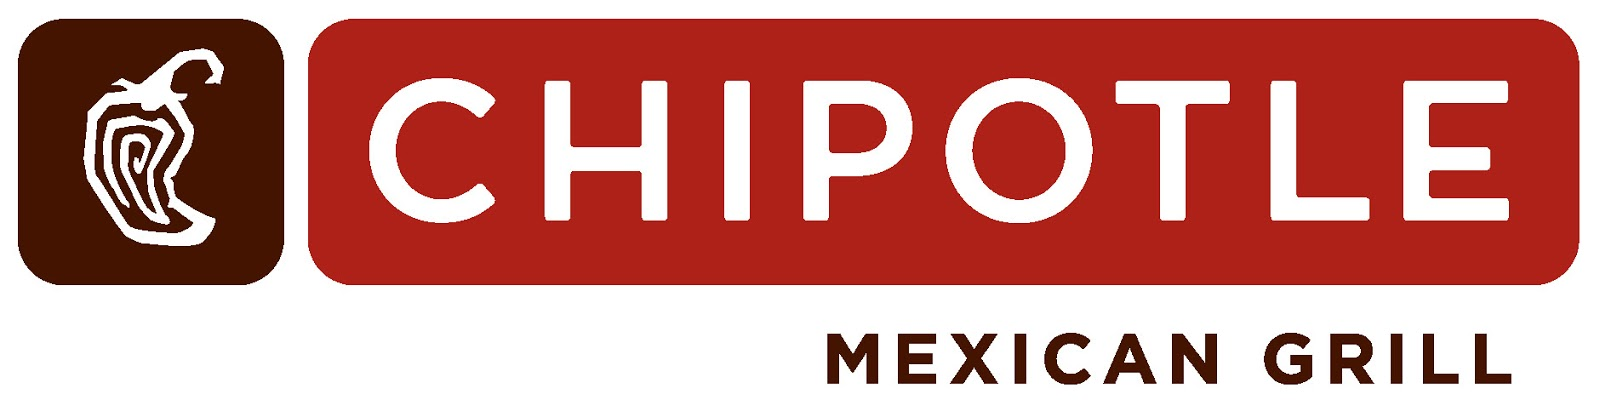 Chipotle Mexican Grill Ticker Symbol Images Meaning Of This Symbol